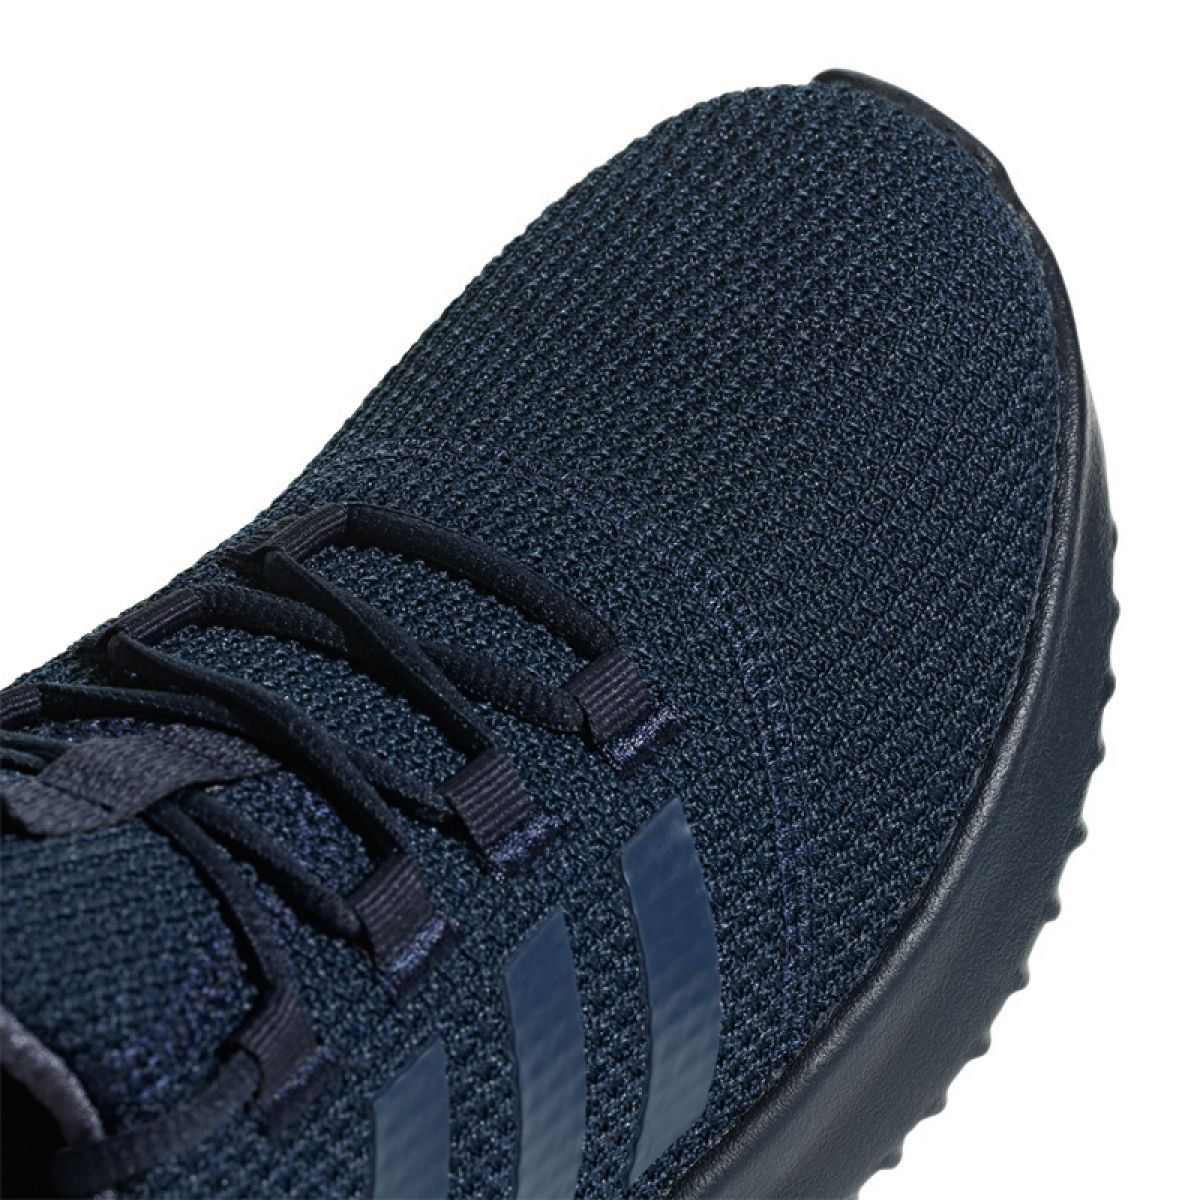 Order Adidas Sneakers Adidas CLOUDFOAM ULTIMATE Navy Blue